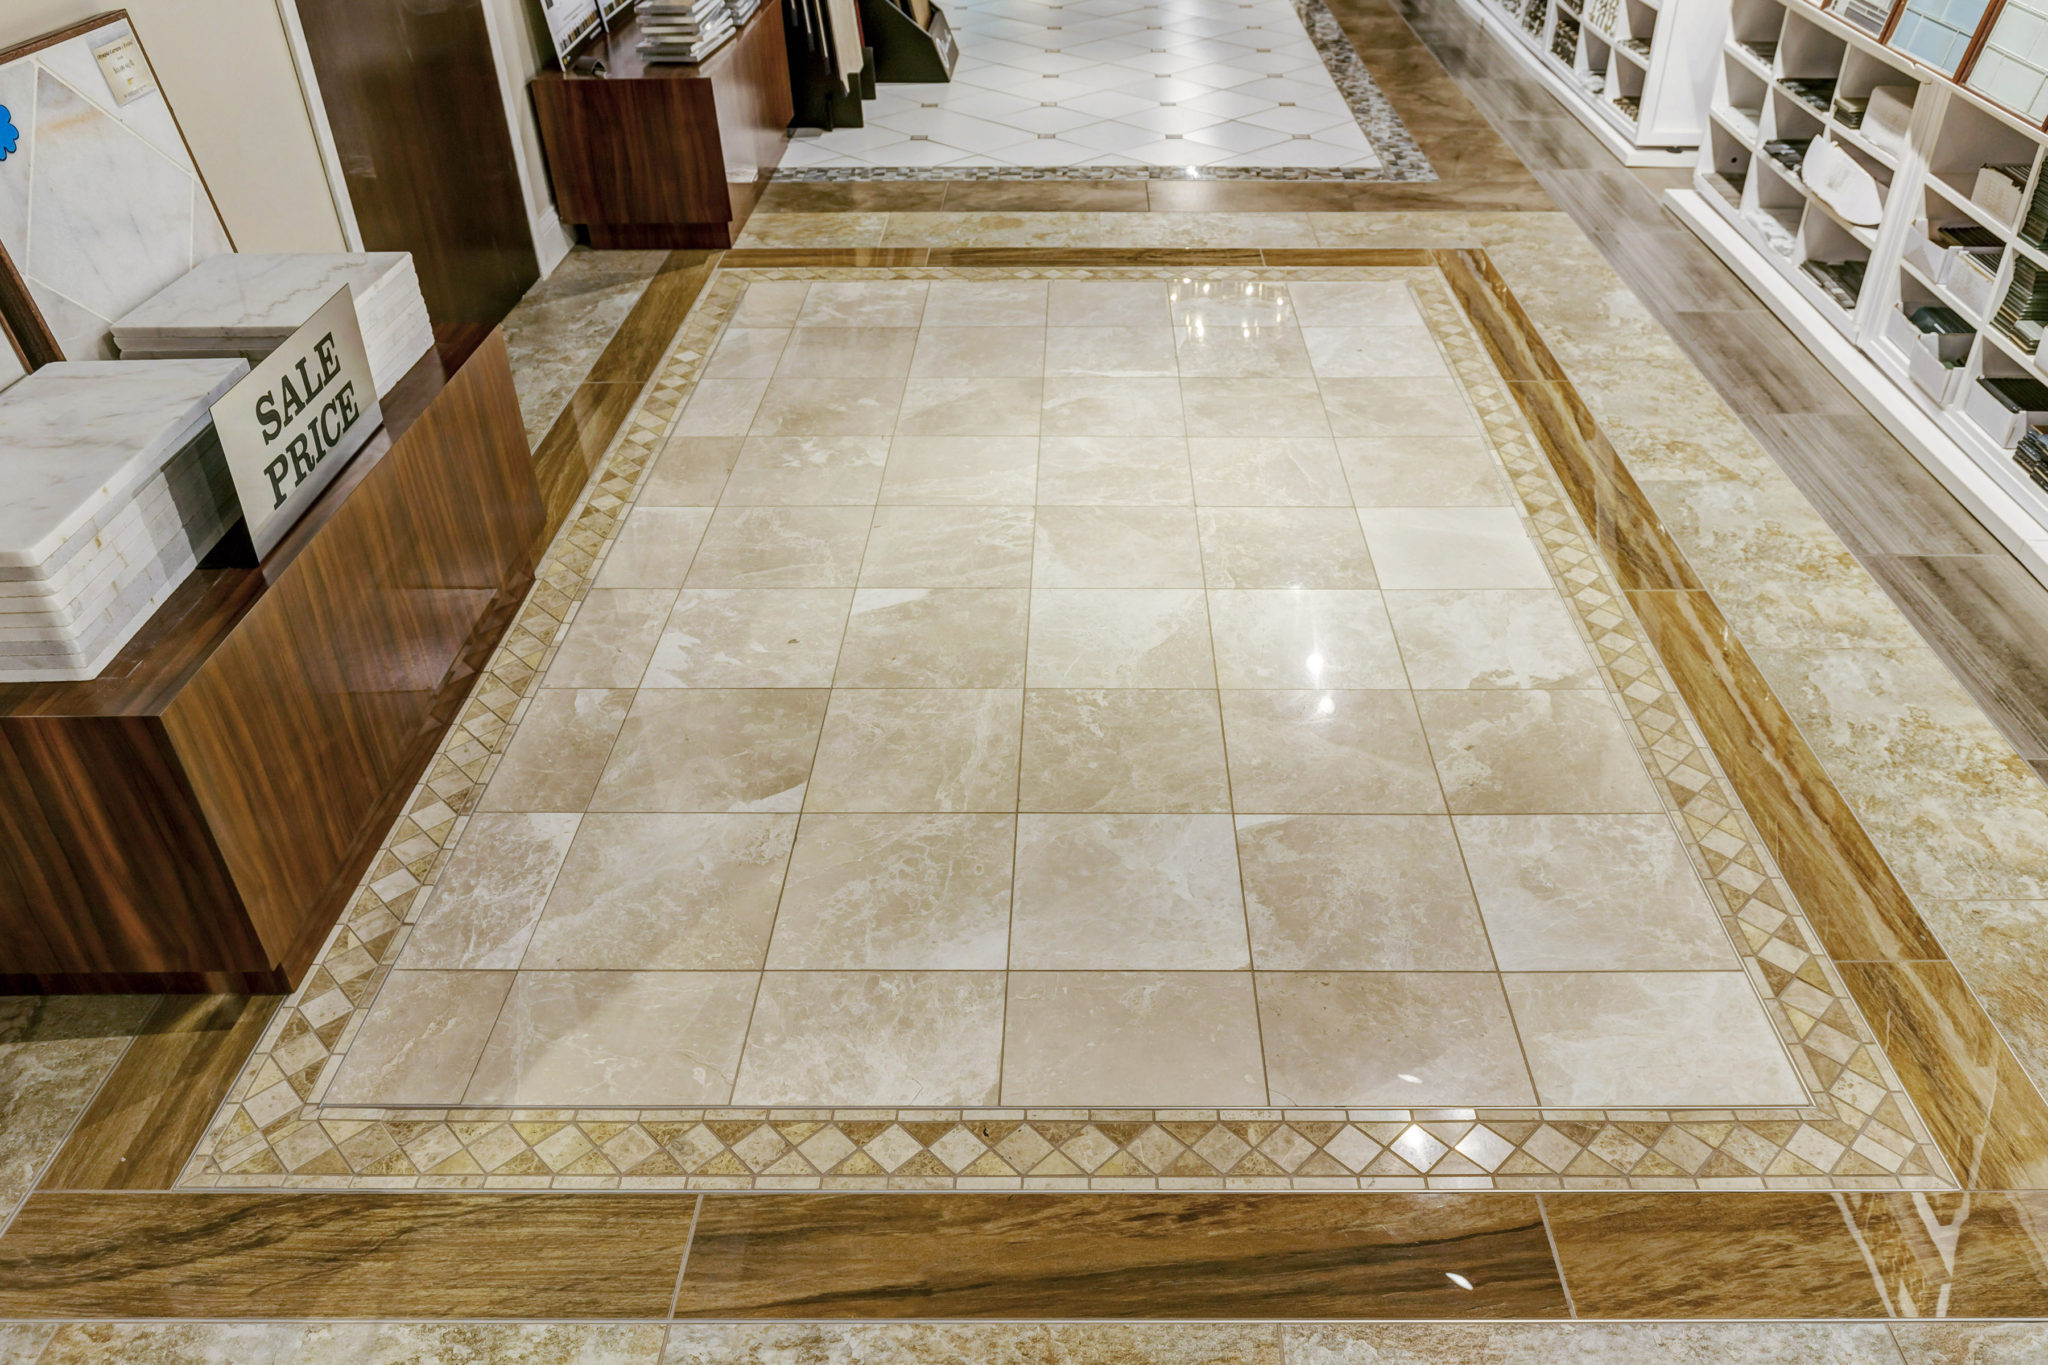 Ceramic Tile St. Charles 63301: Come See Many Ceramic Tile Choices